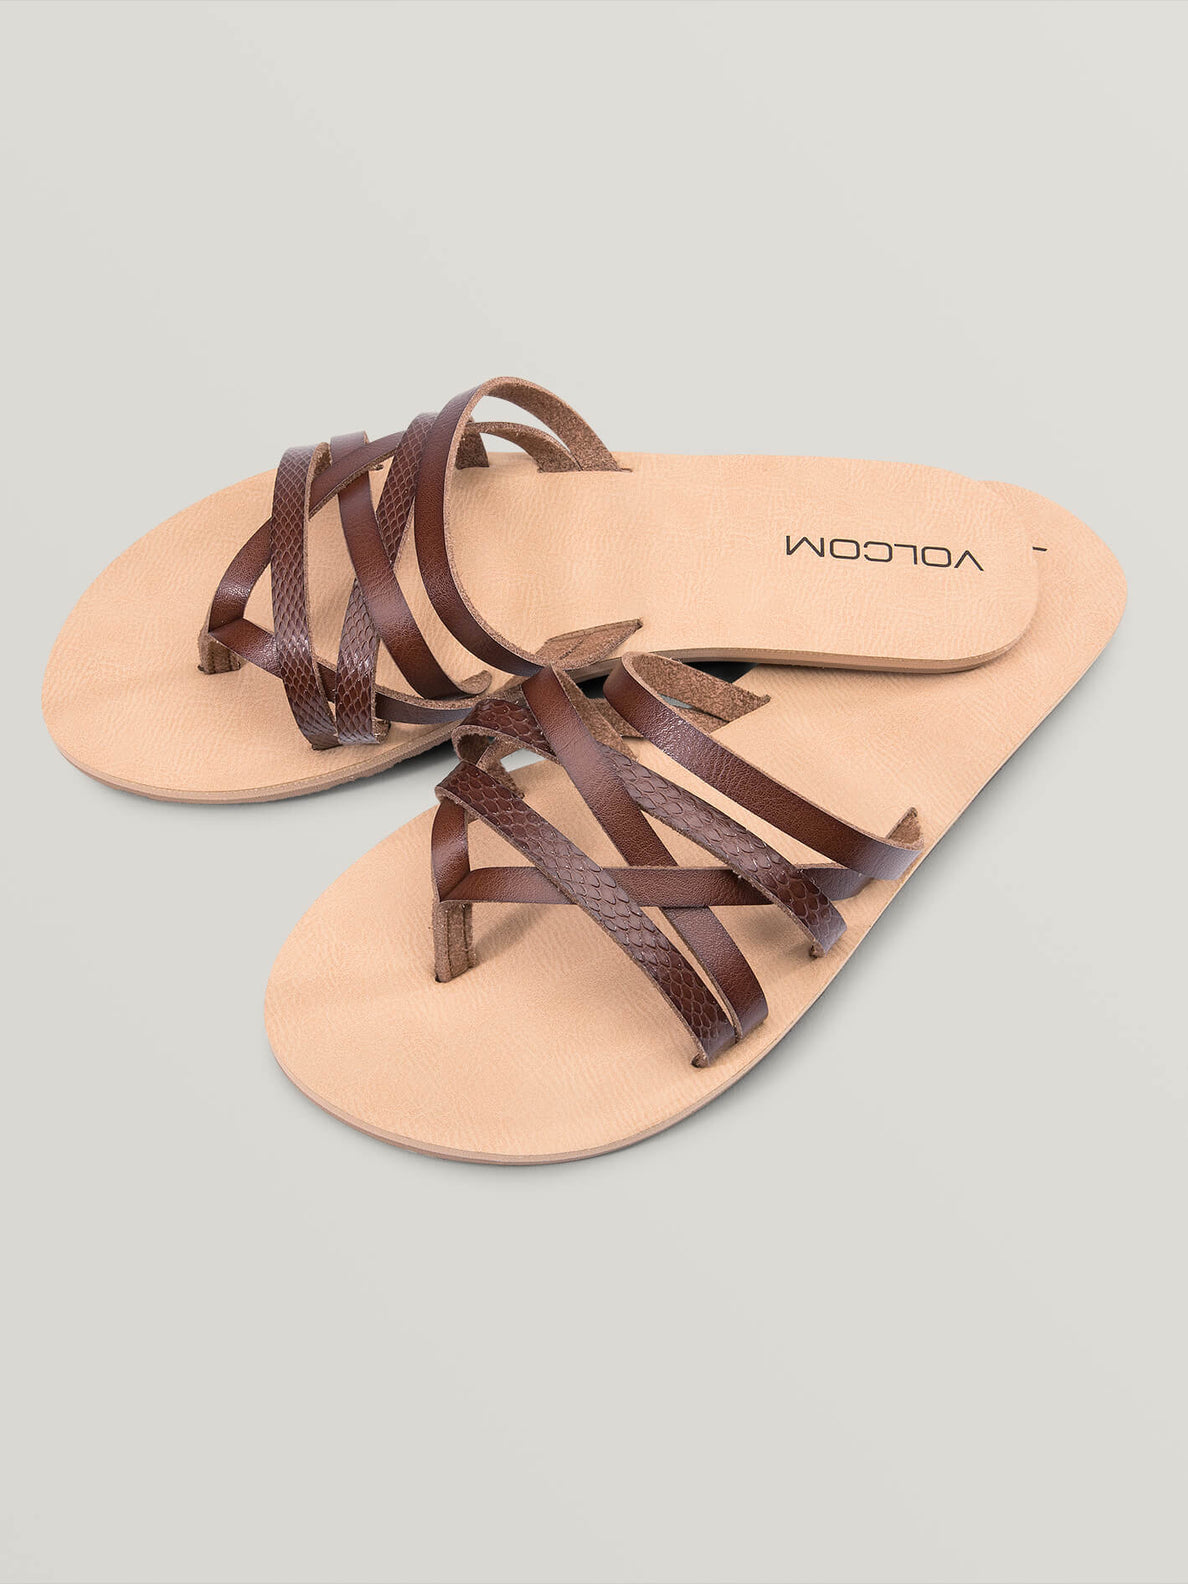 Legacy Sandals In Brown Combo, Front View